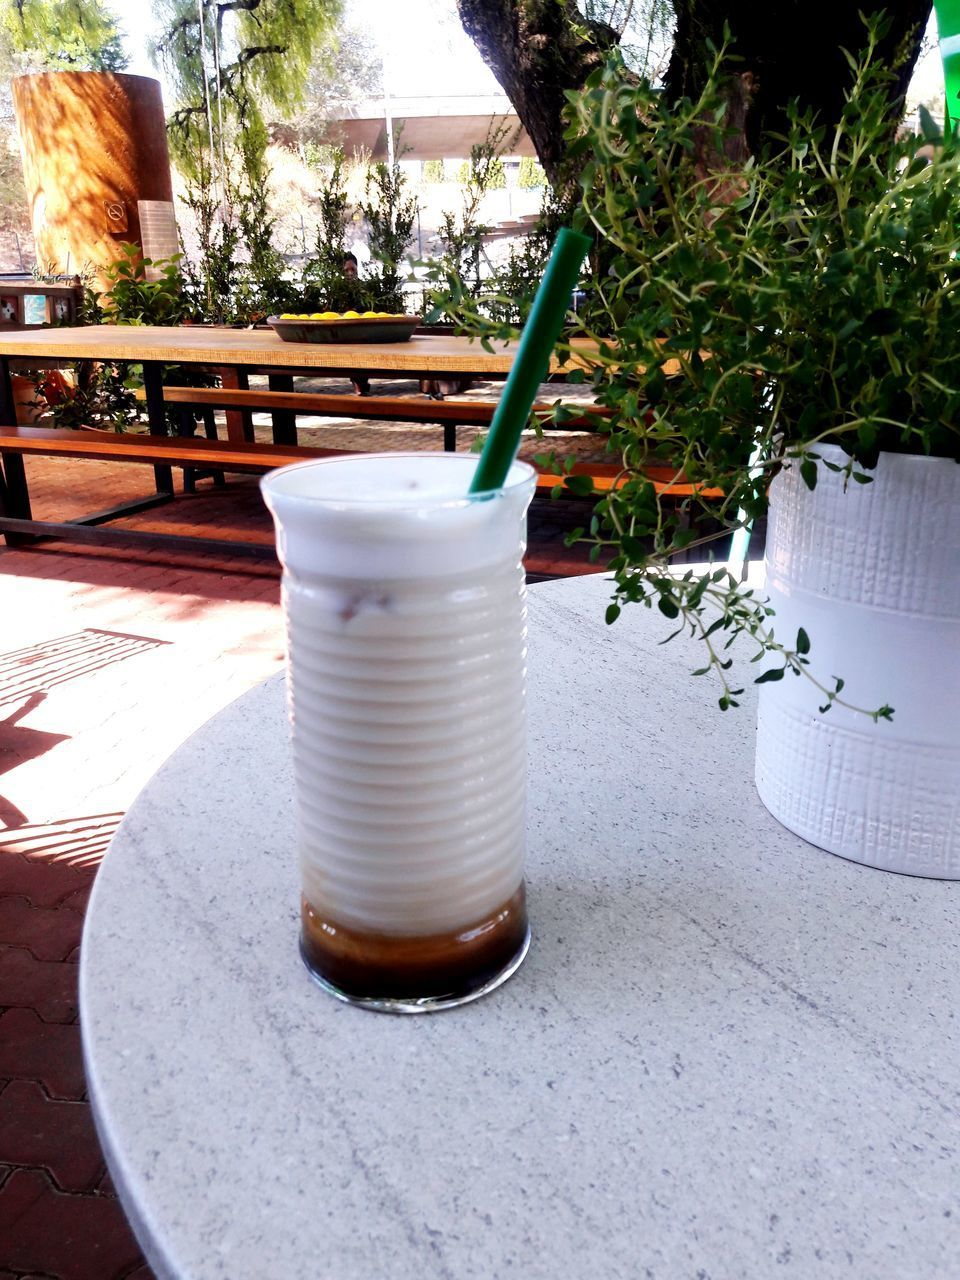 CLOSE-UP OF COFFEE ON TABLE AGAINST PLANTS